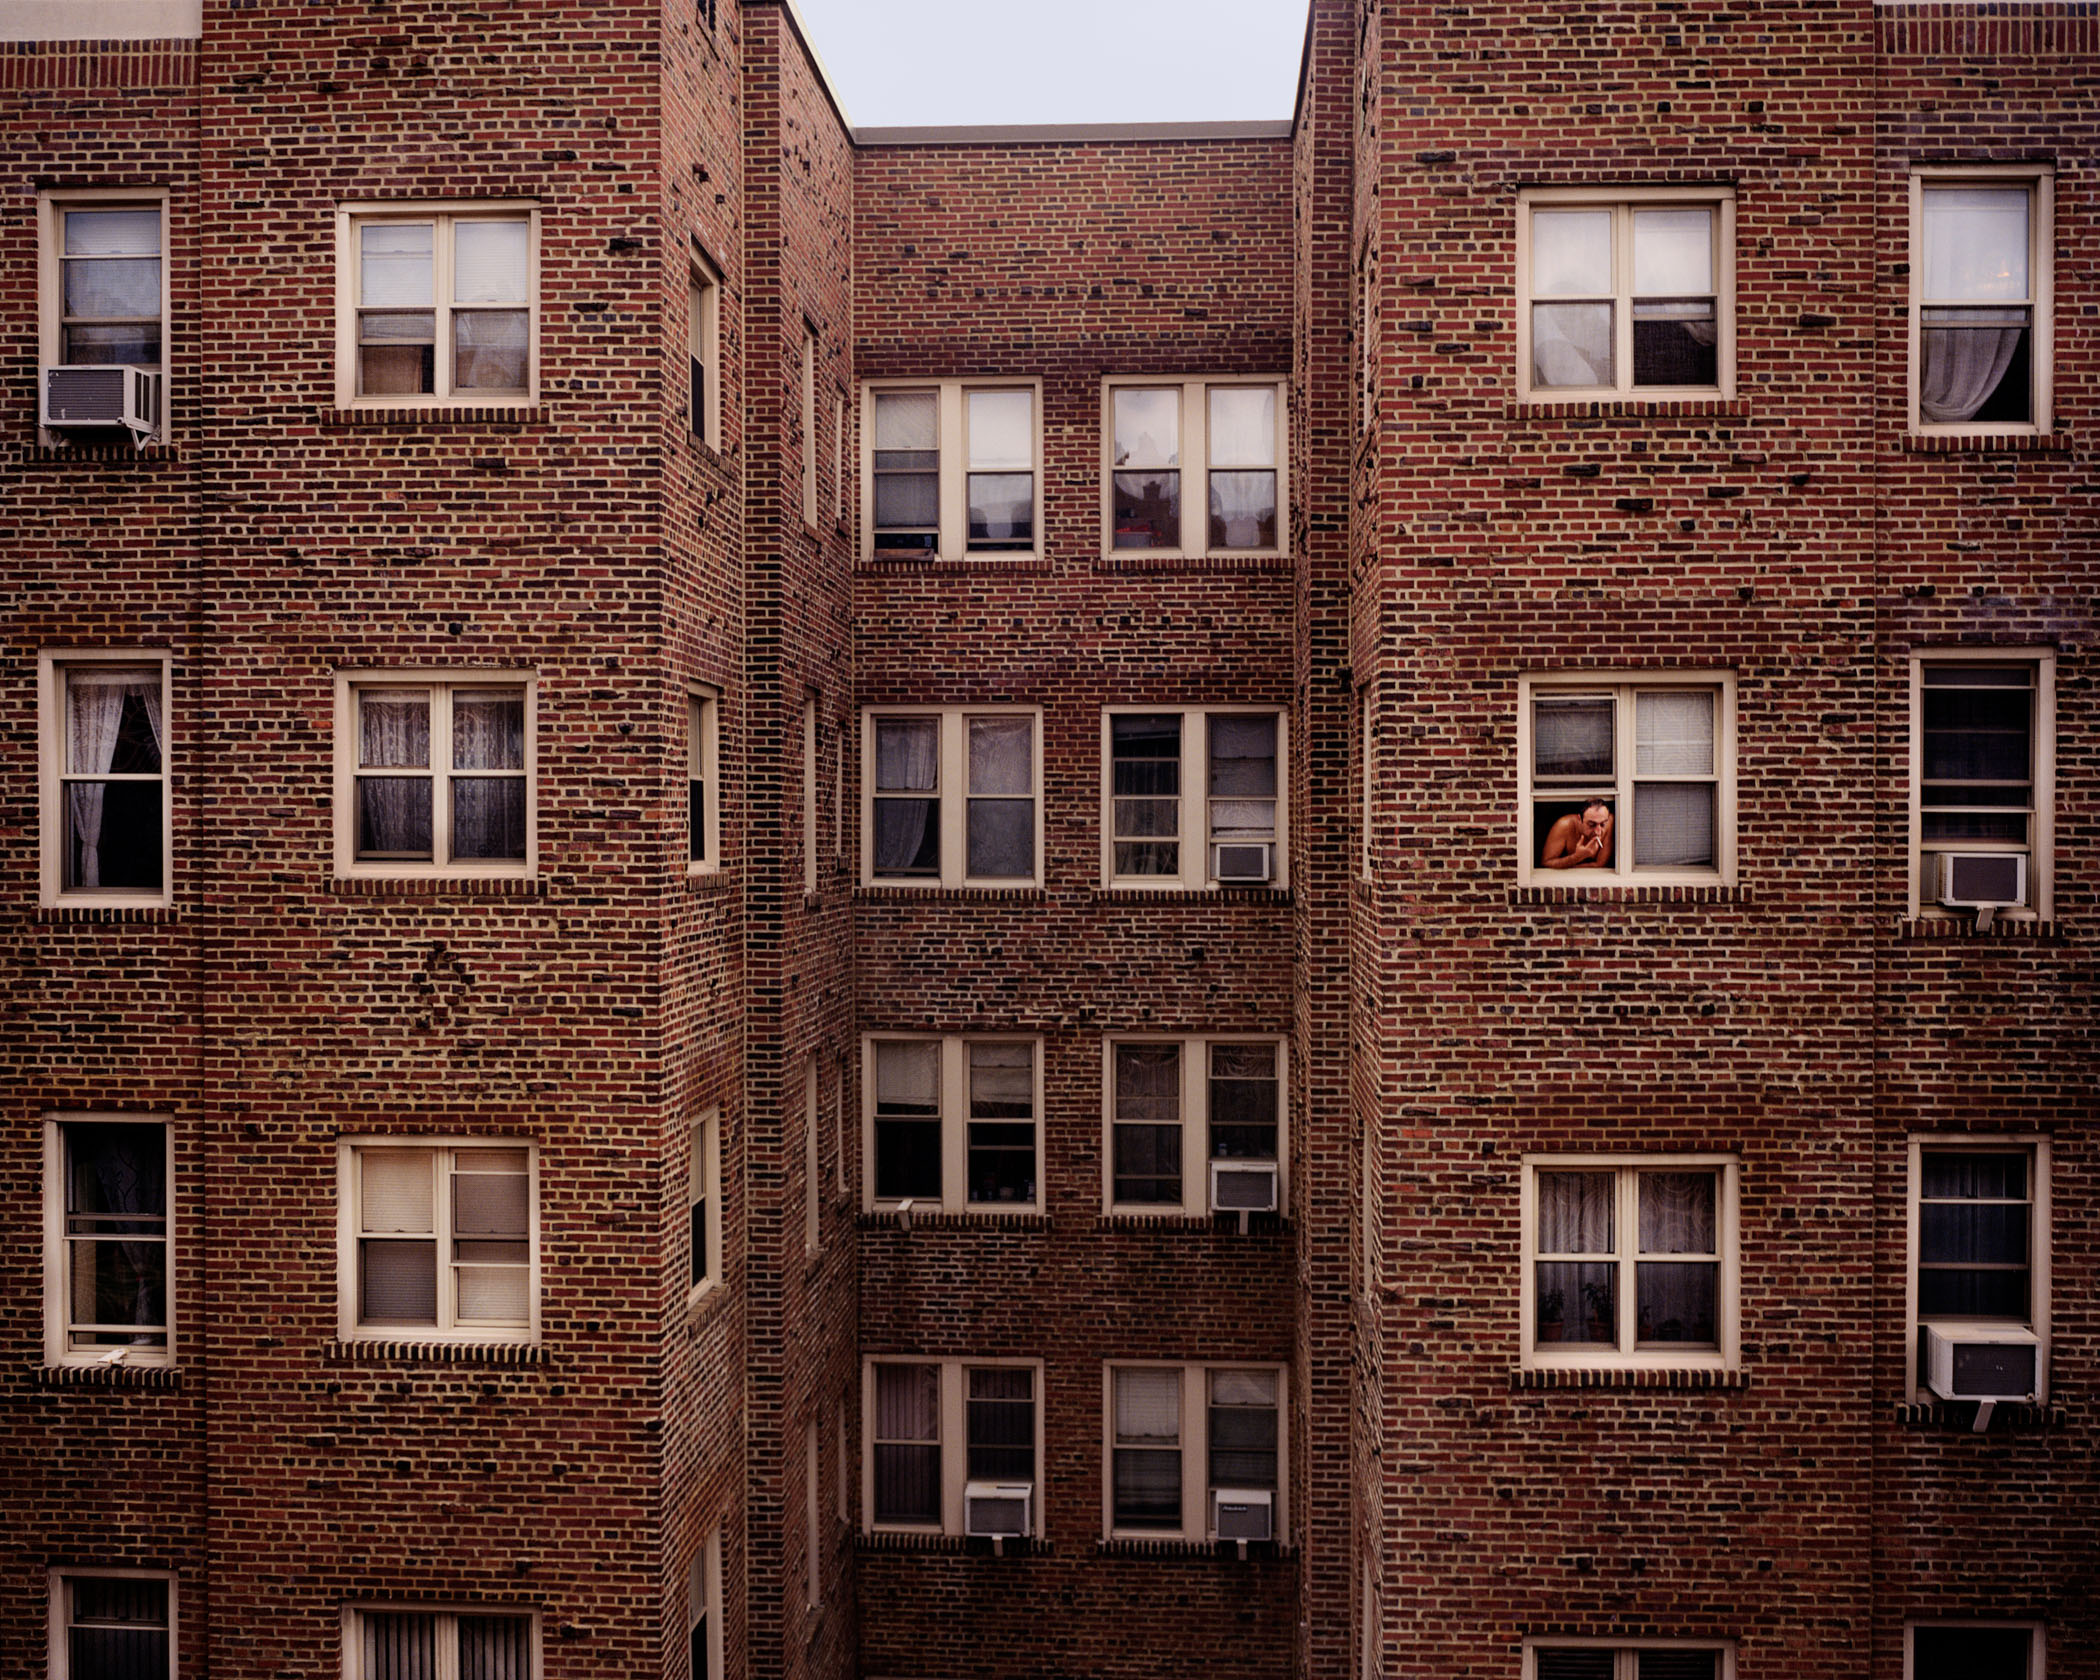 A man enjoying a cigarette out of his apartment window. (Photo by Alexey Yurenev/GroundTruth)